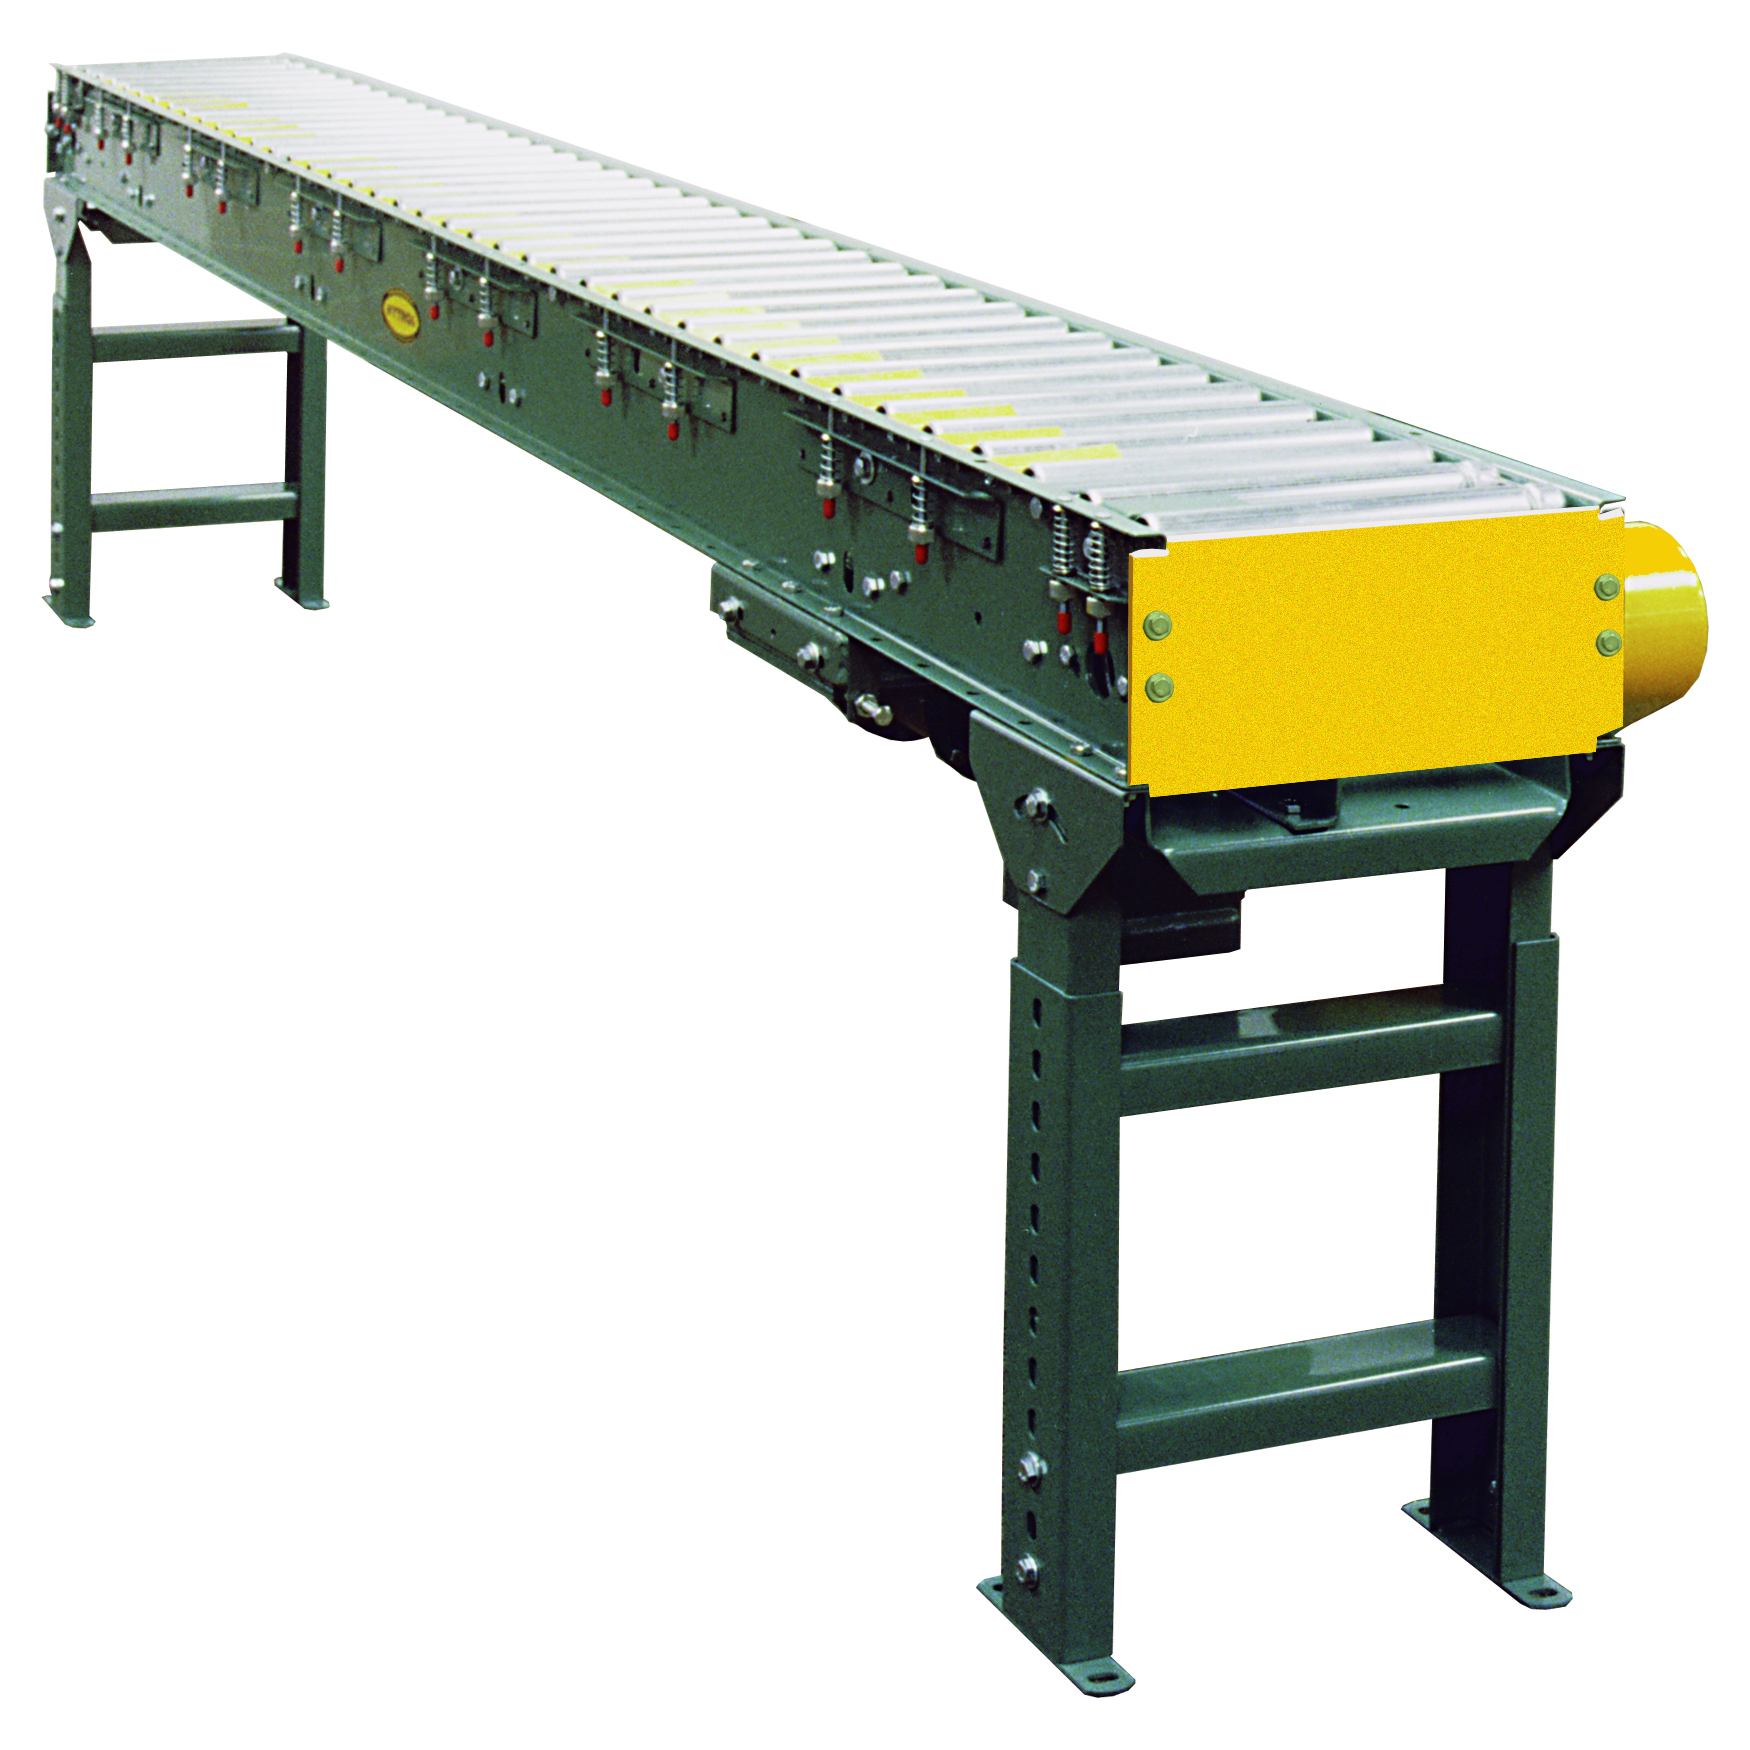 Live-Roller Conveyor Systems